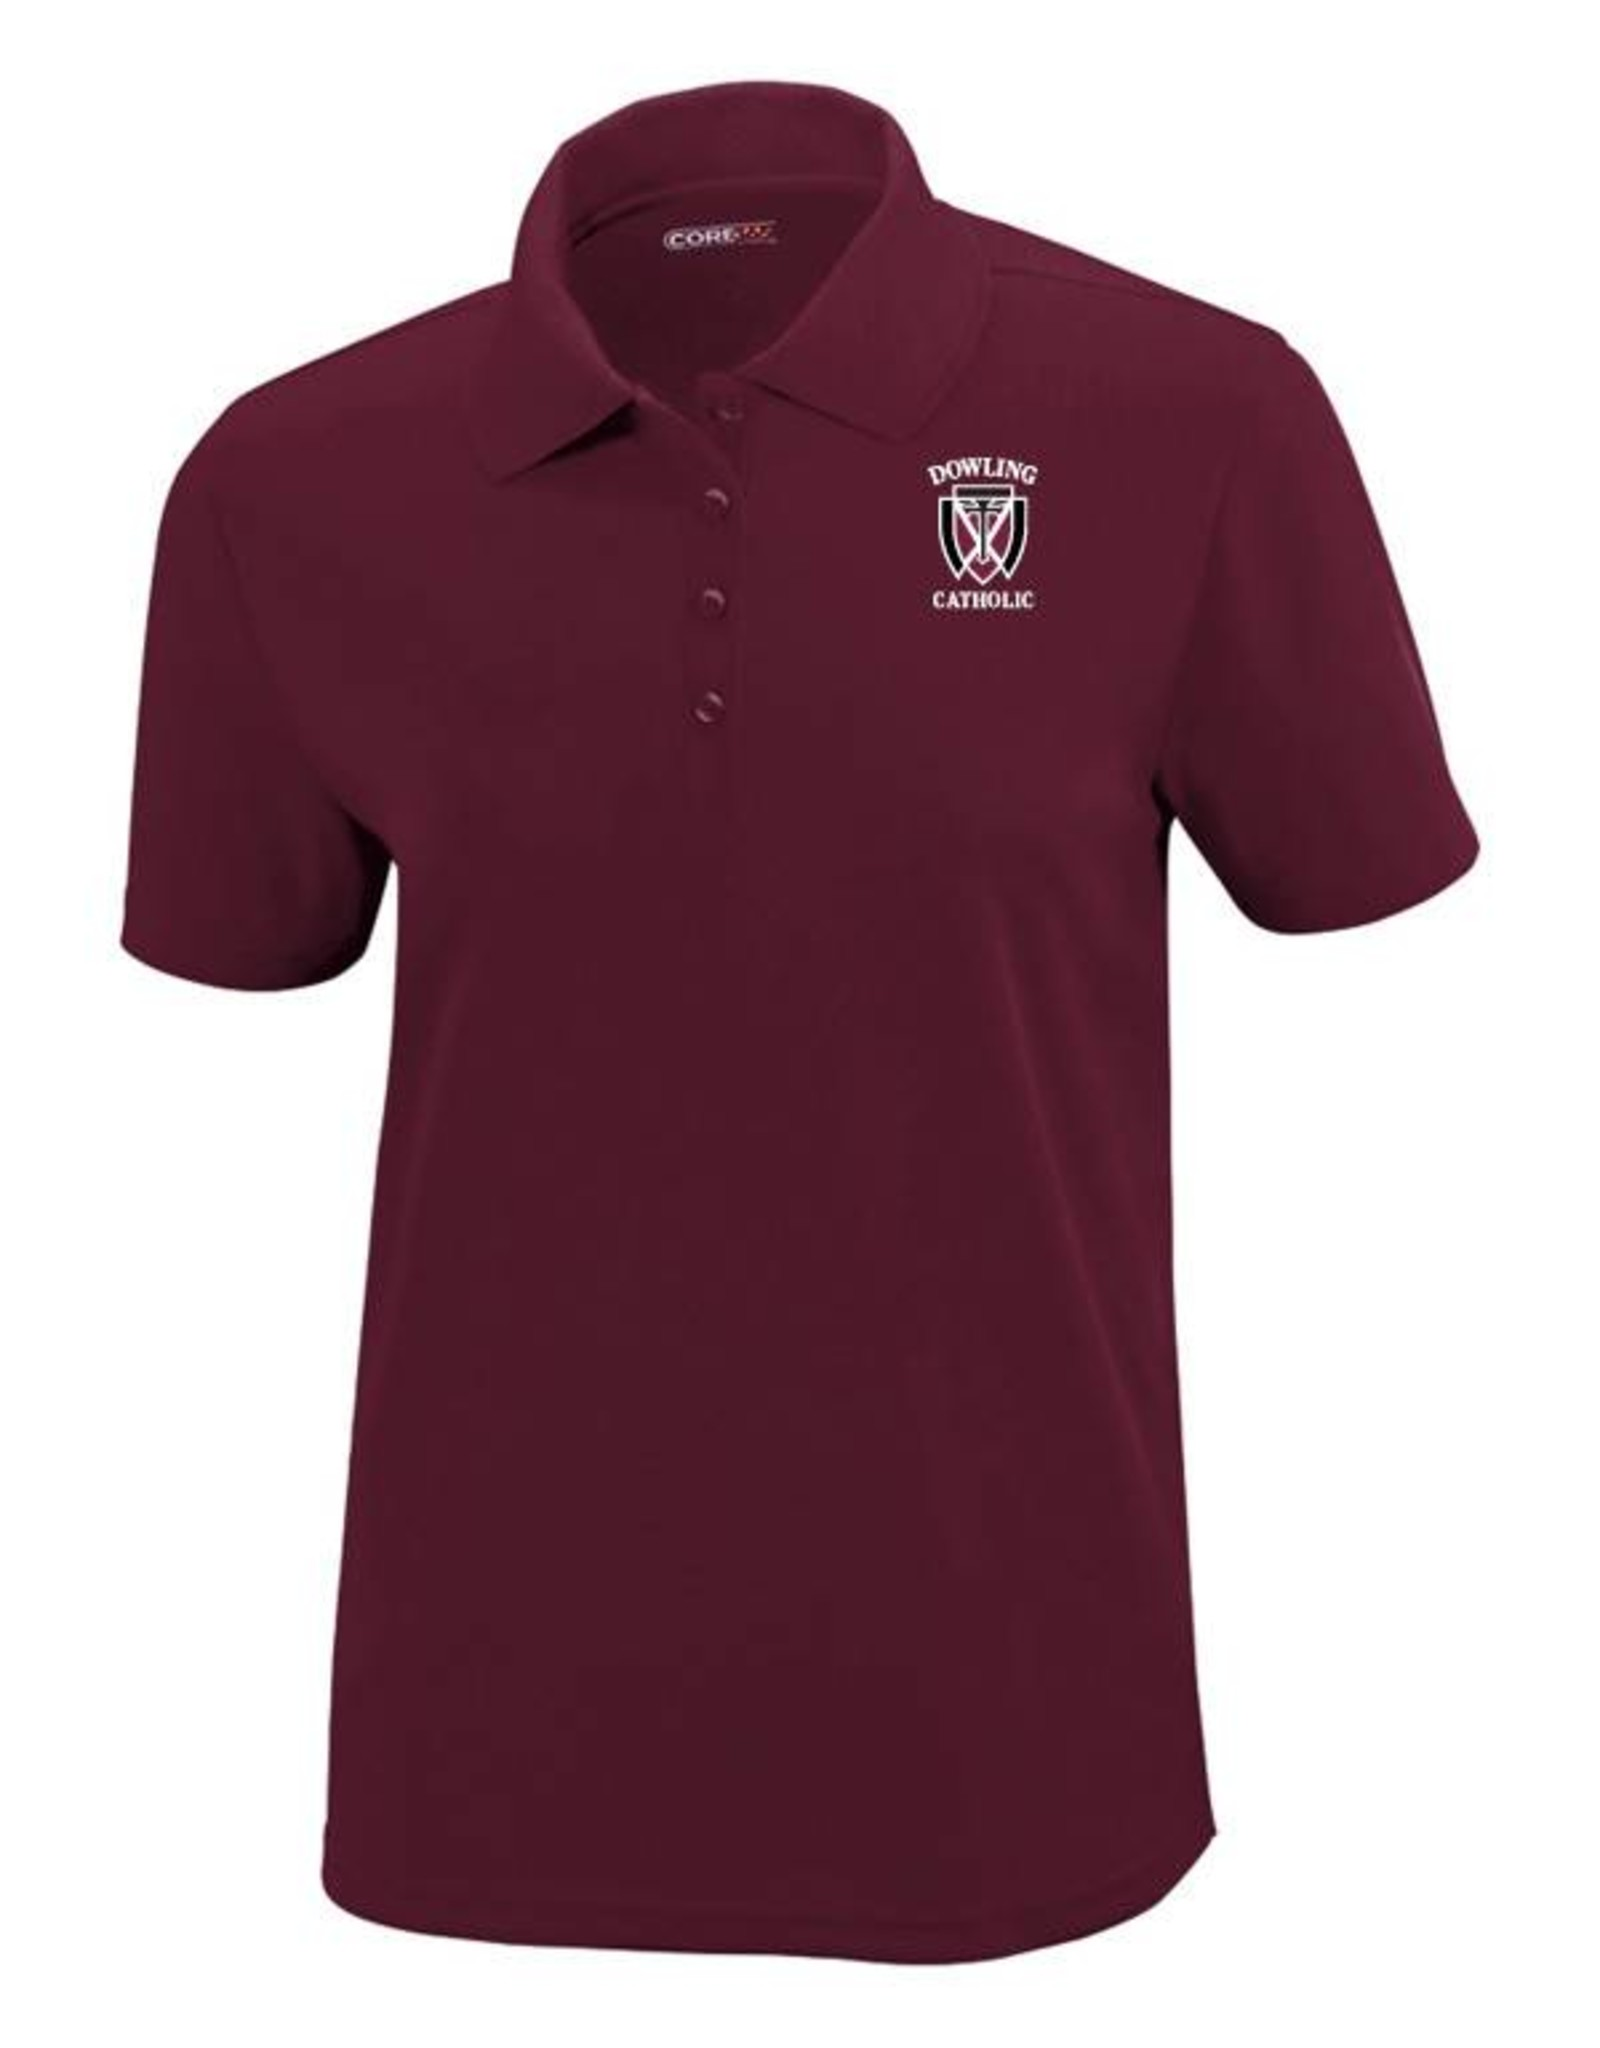 Core Women's Short Sleeve Performance Polo - ONLINE